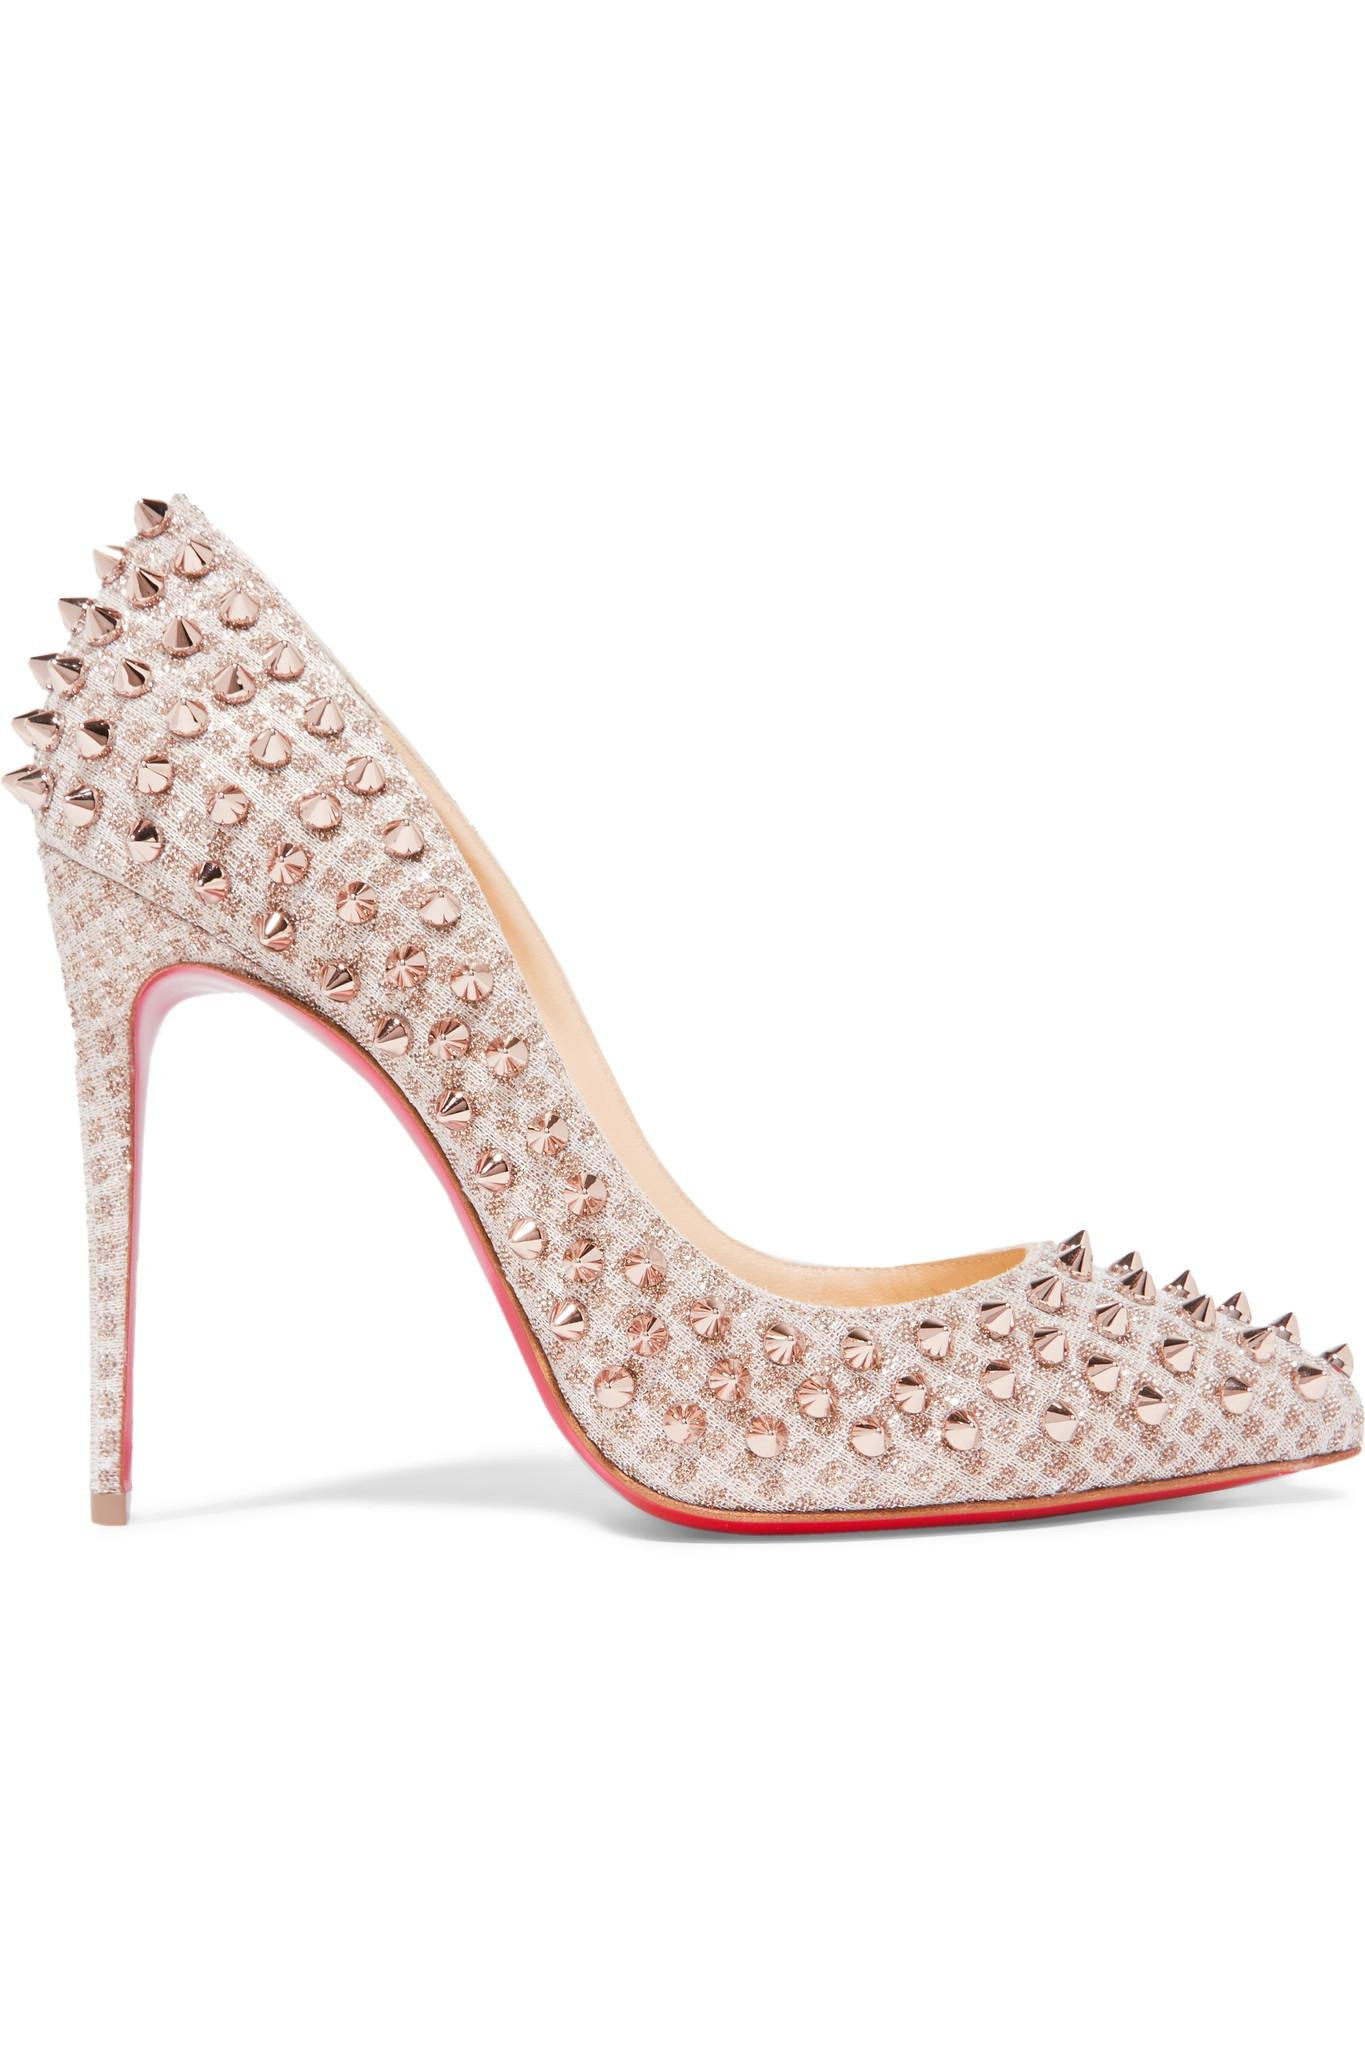 louboutin pigalle 100 studded pumps